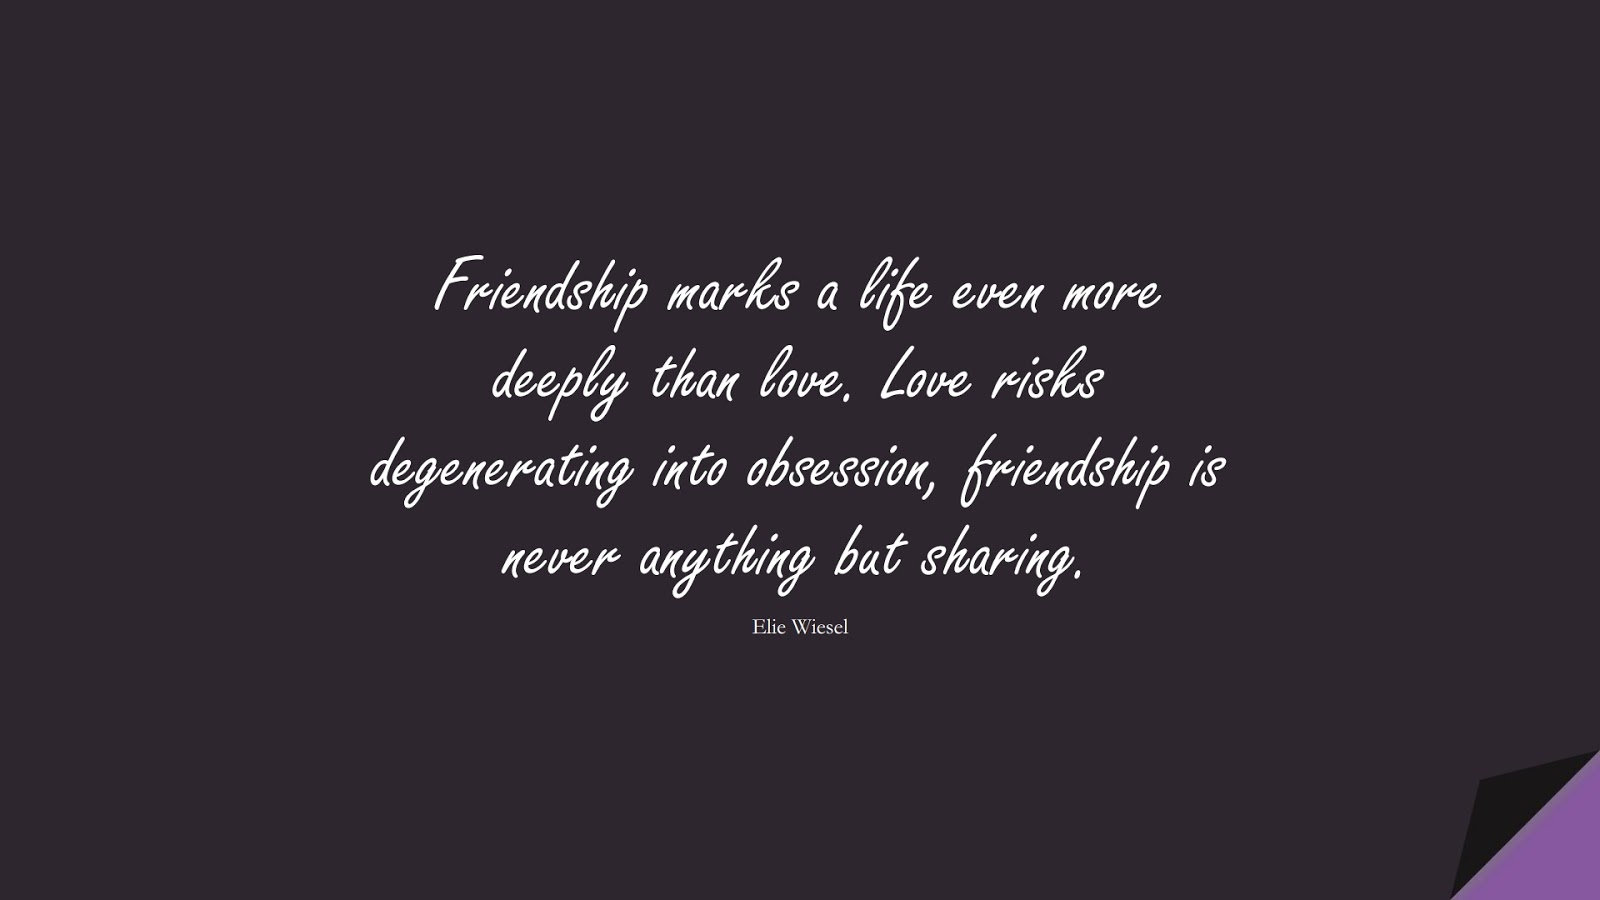 Friendship marks a life even more deeply than love. Love risks degenerating into obsession, friendship is never anything but sharing. (Elie Wiesel);  #LoveQuotes